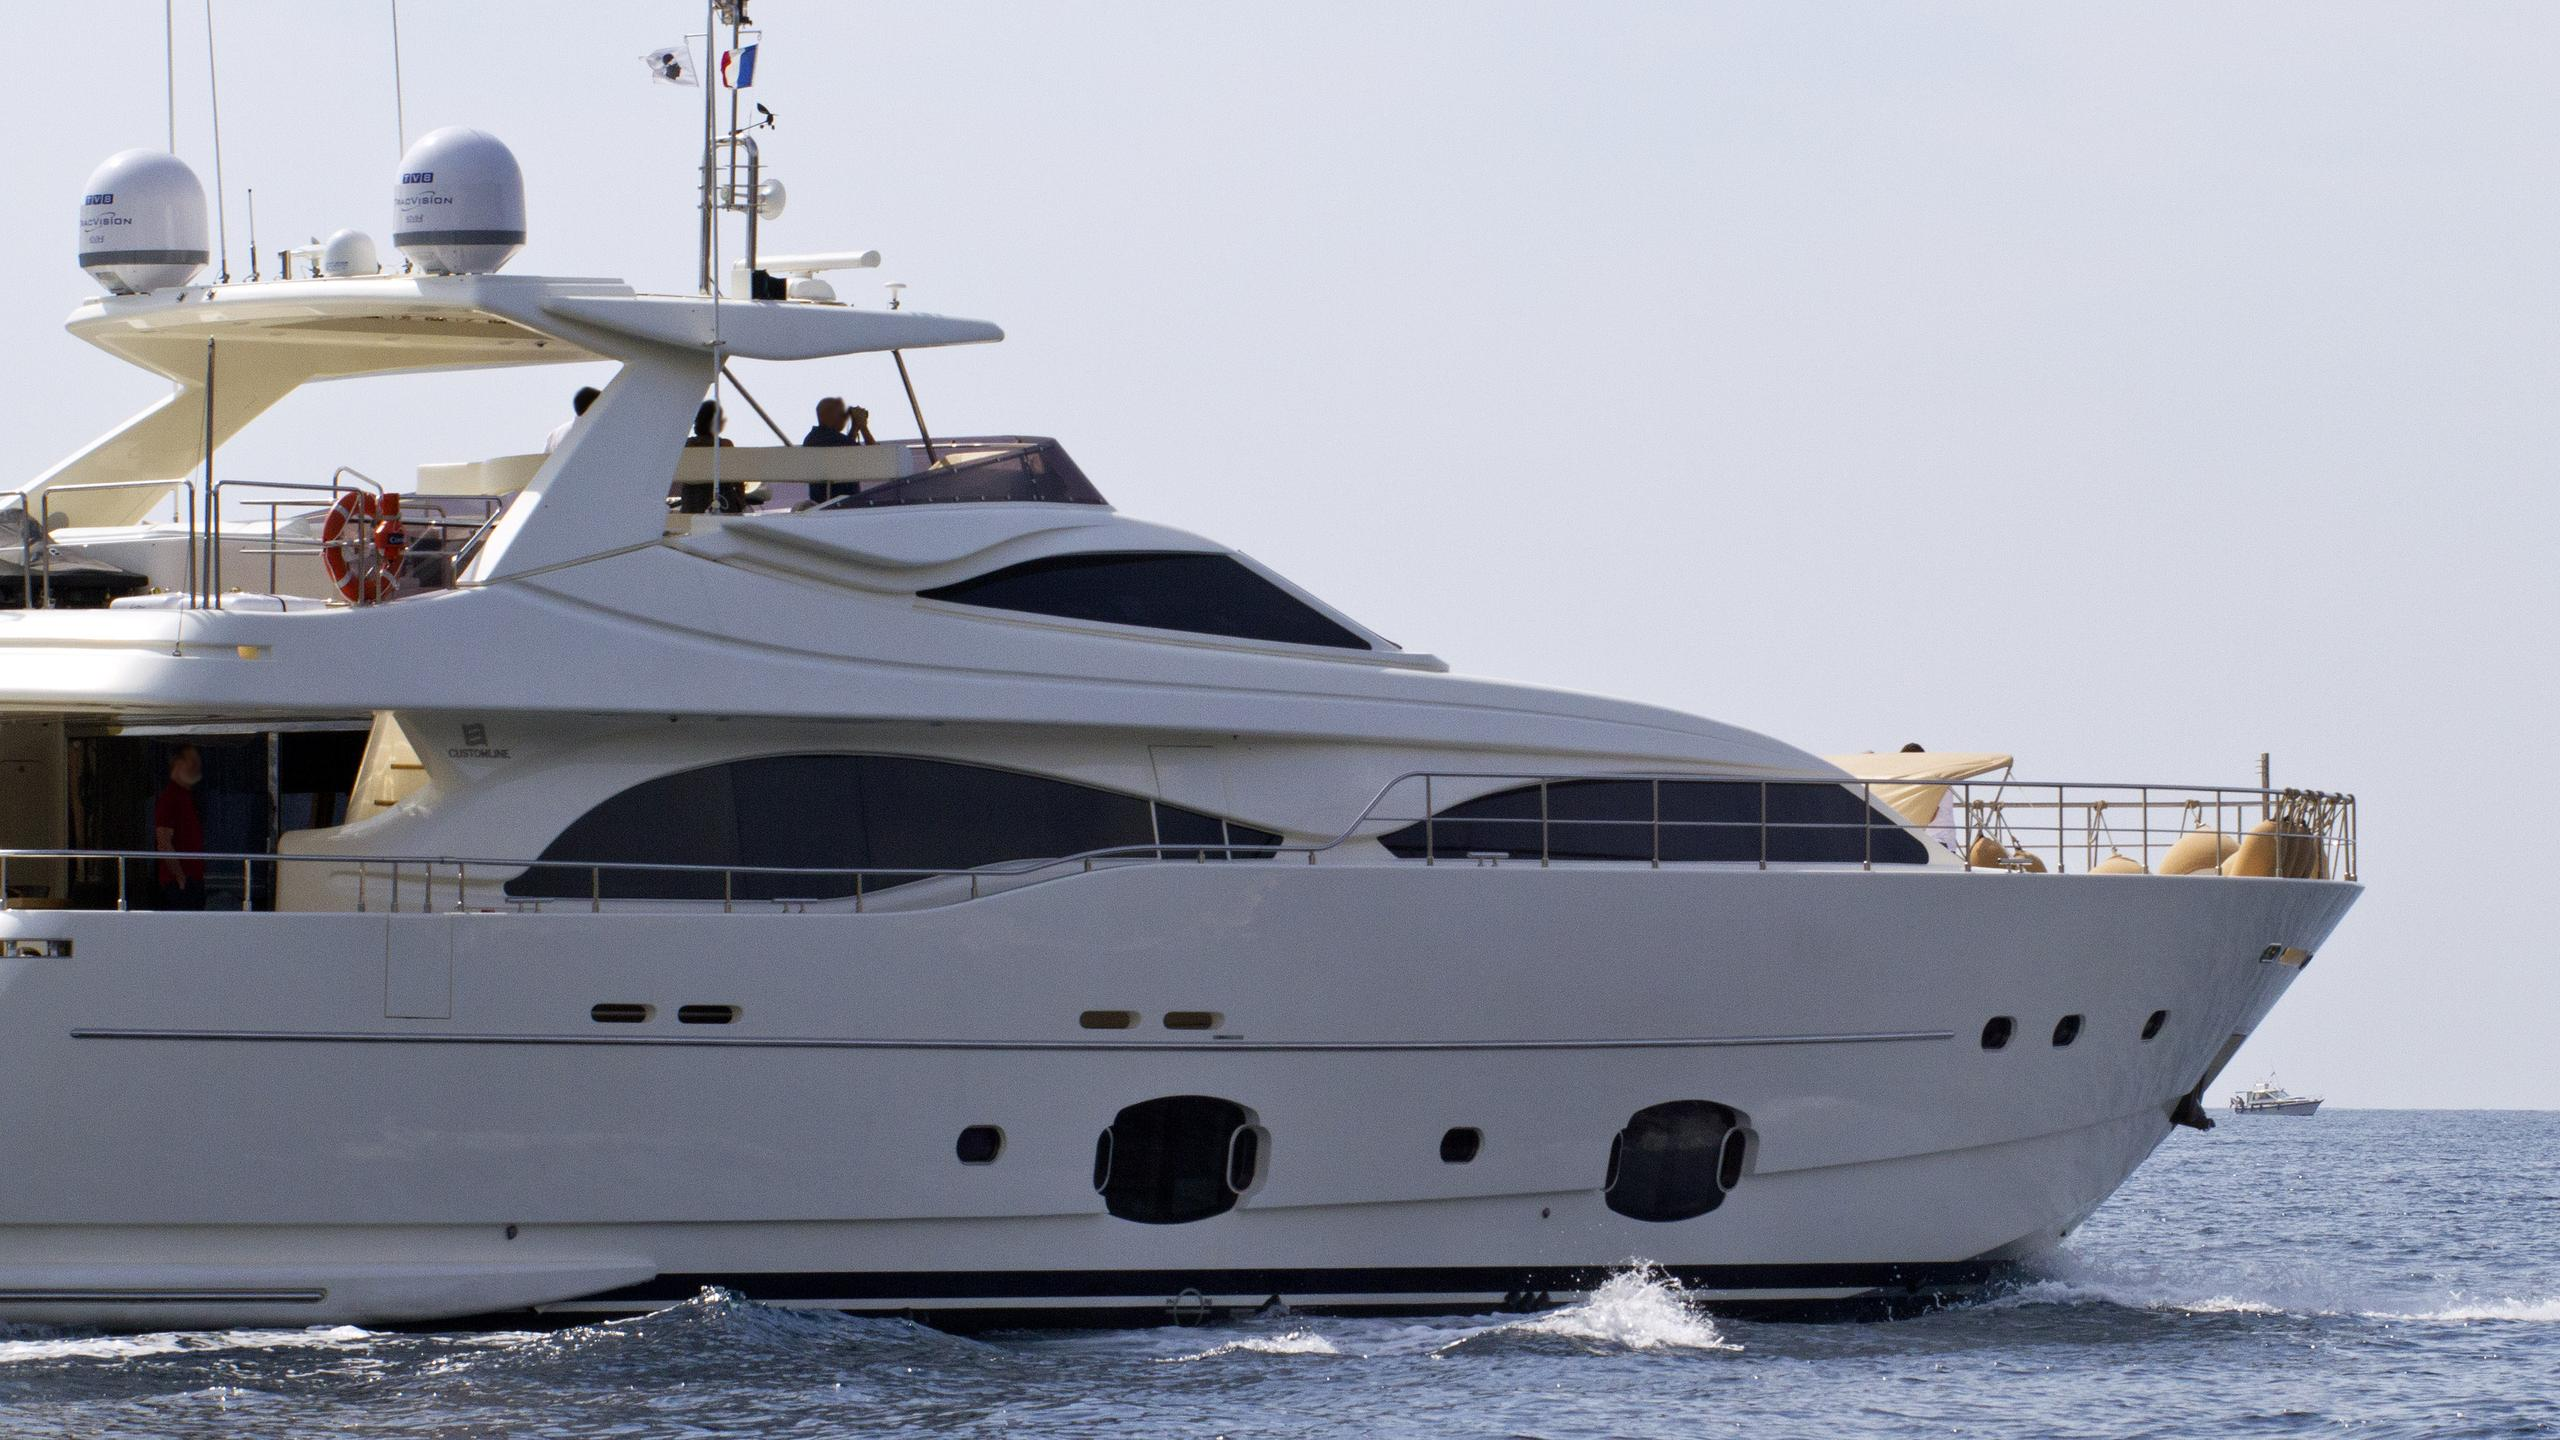 the capital dalfa motor yacht custom line 97 ferretti 2008 29m running side details